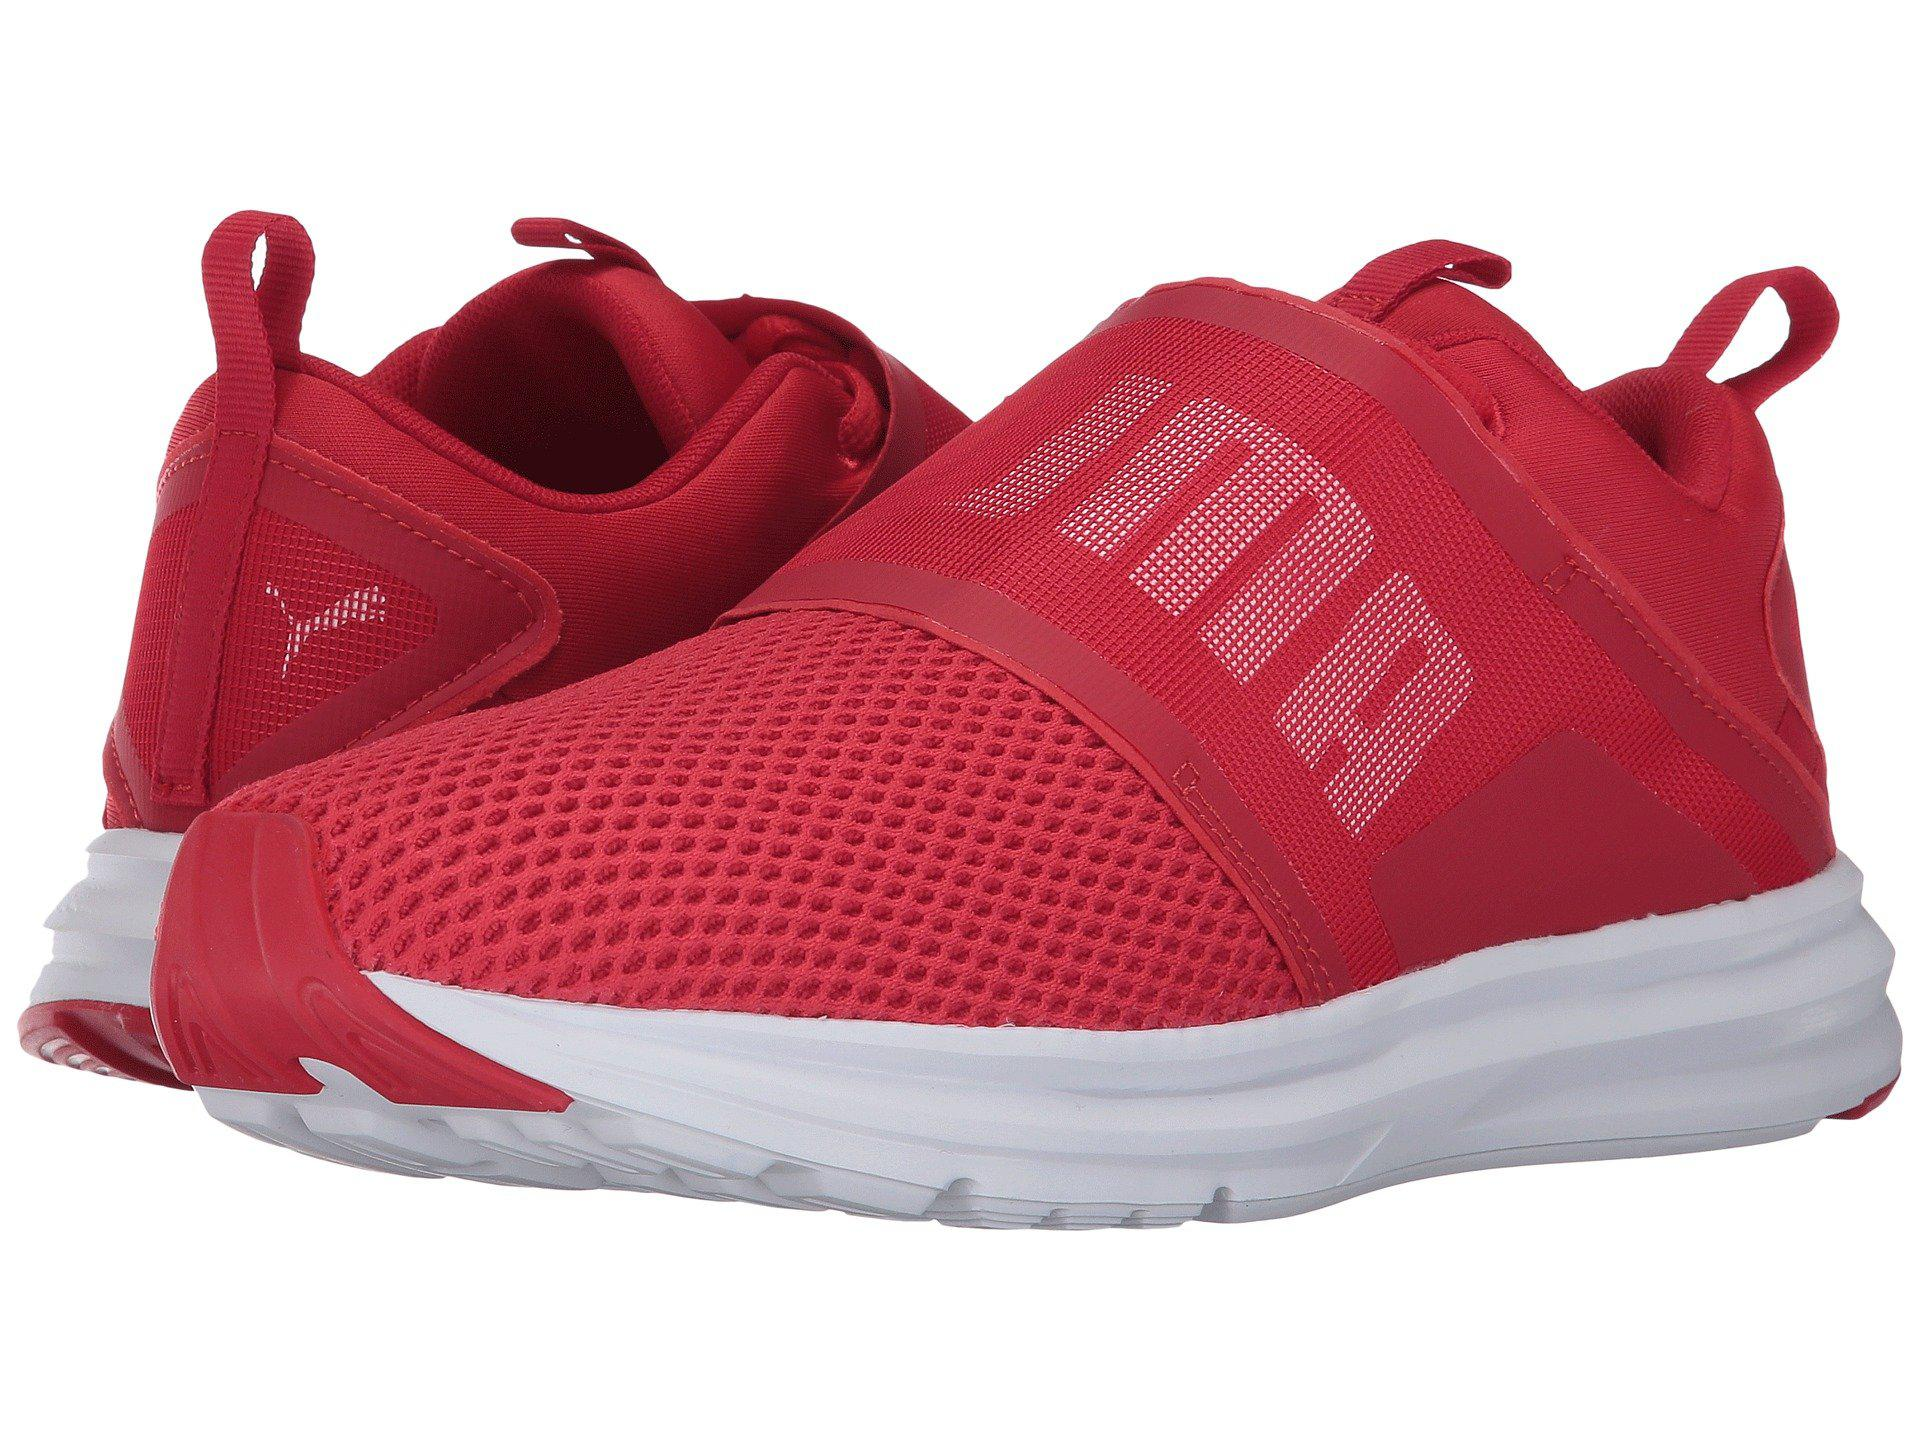 Lyst - PUMA Enzo Strap in Red for Men - Save 16% 37fcad71c